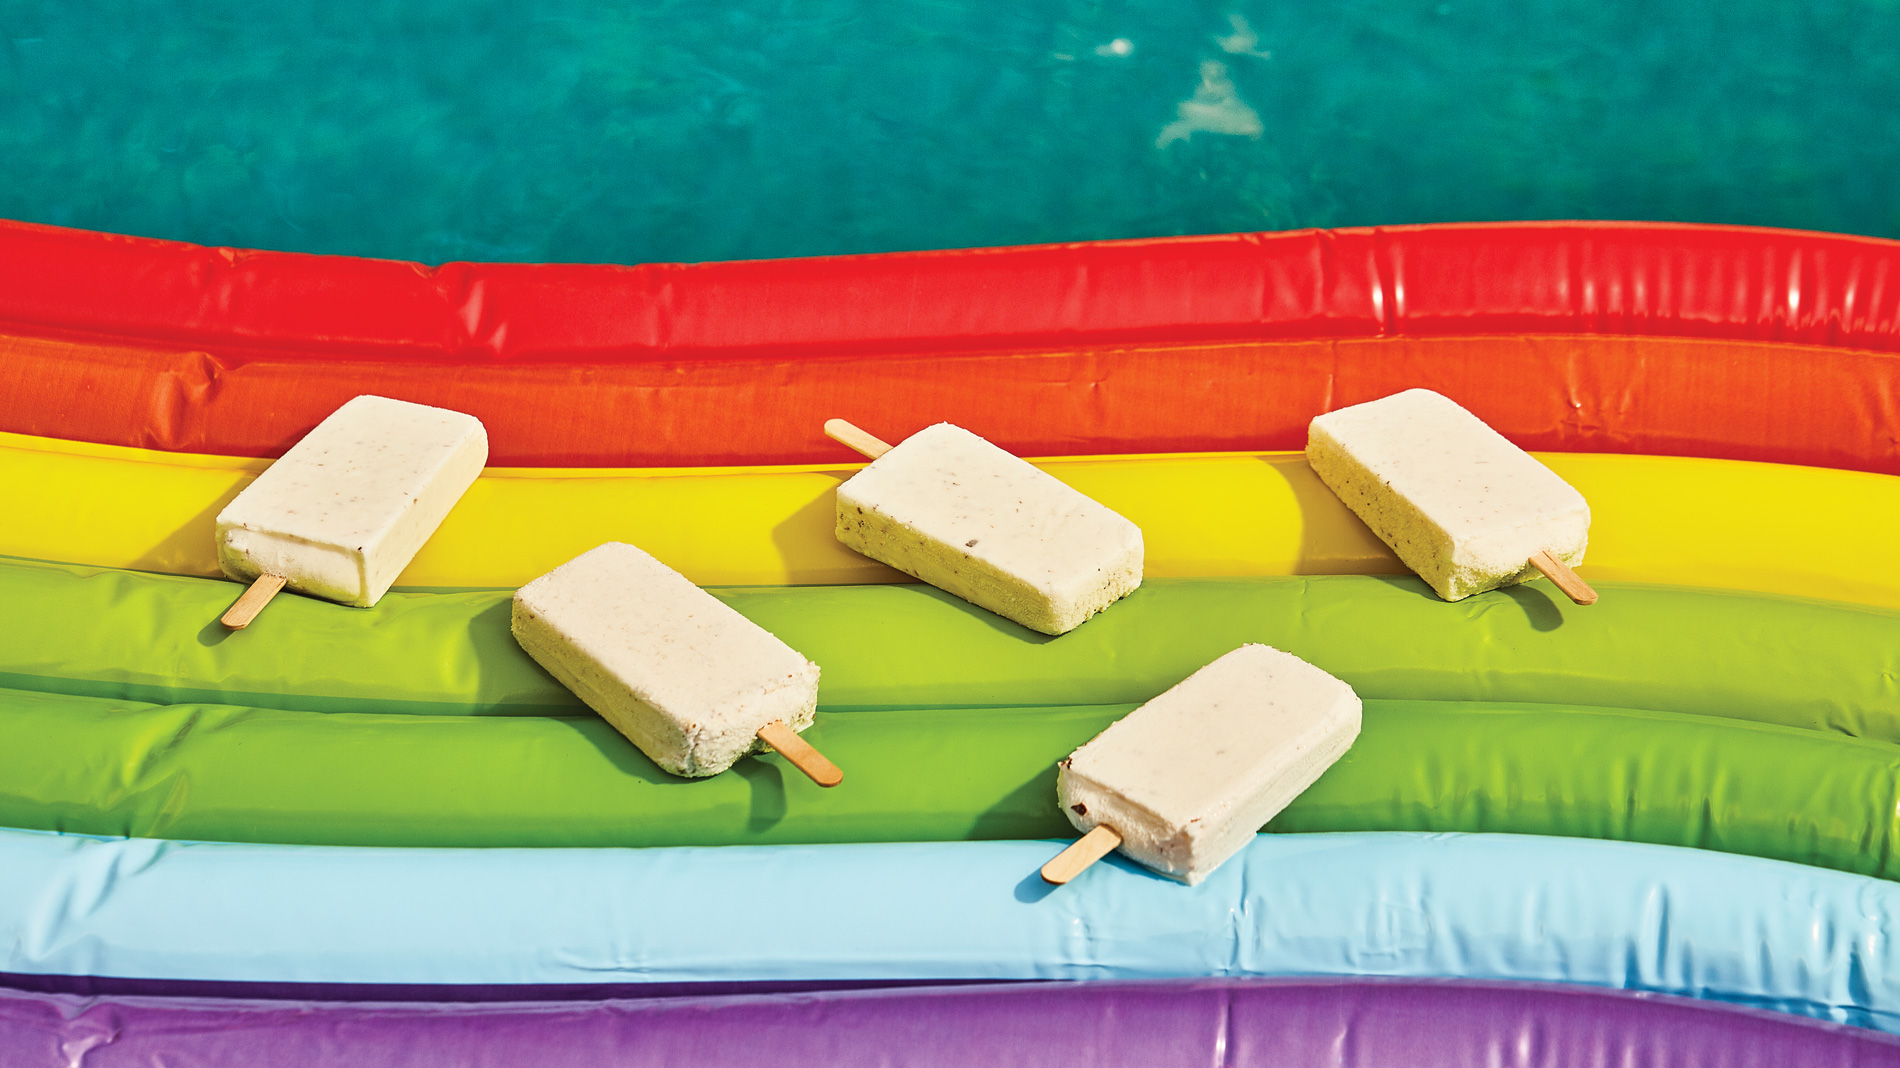 popsicles on a rainbow pool float